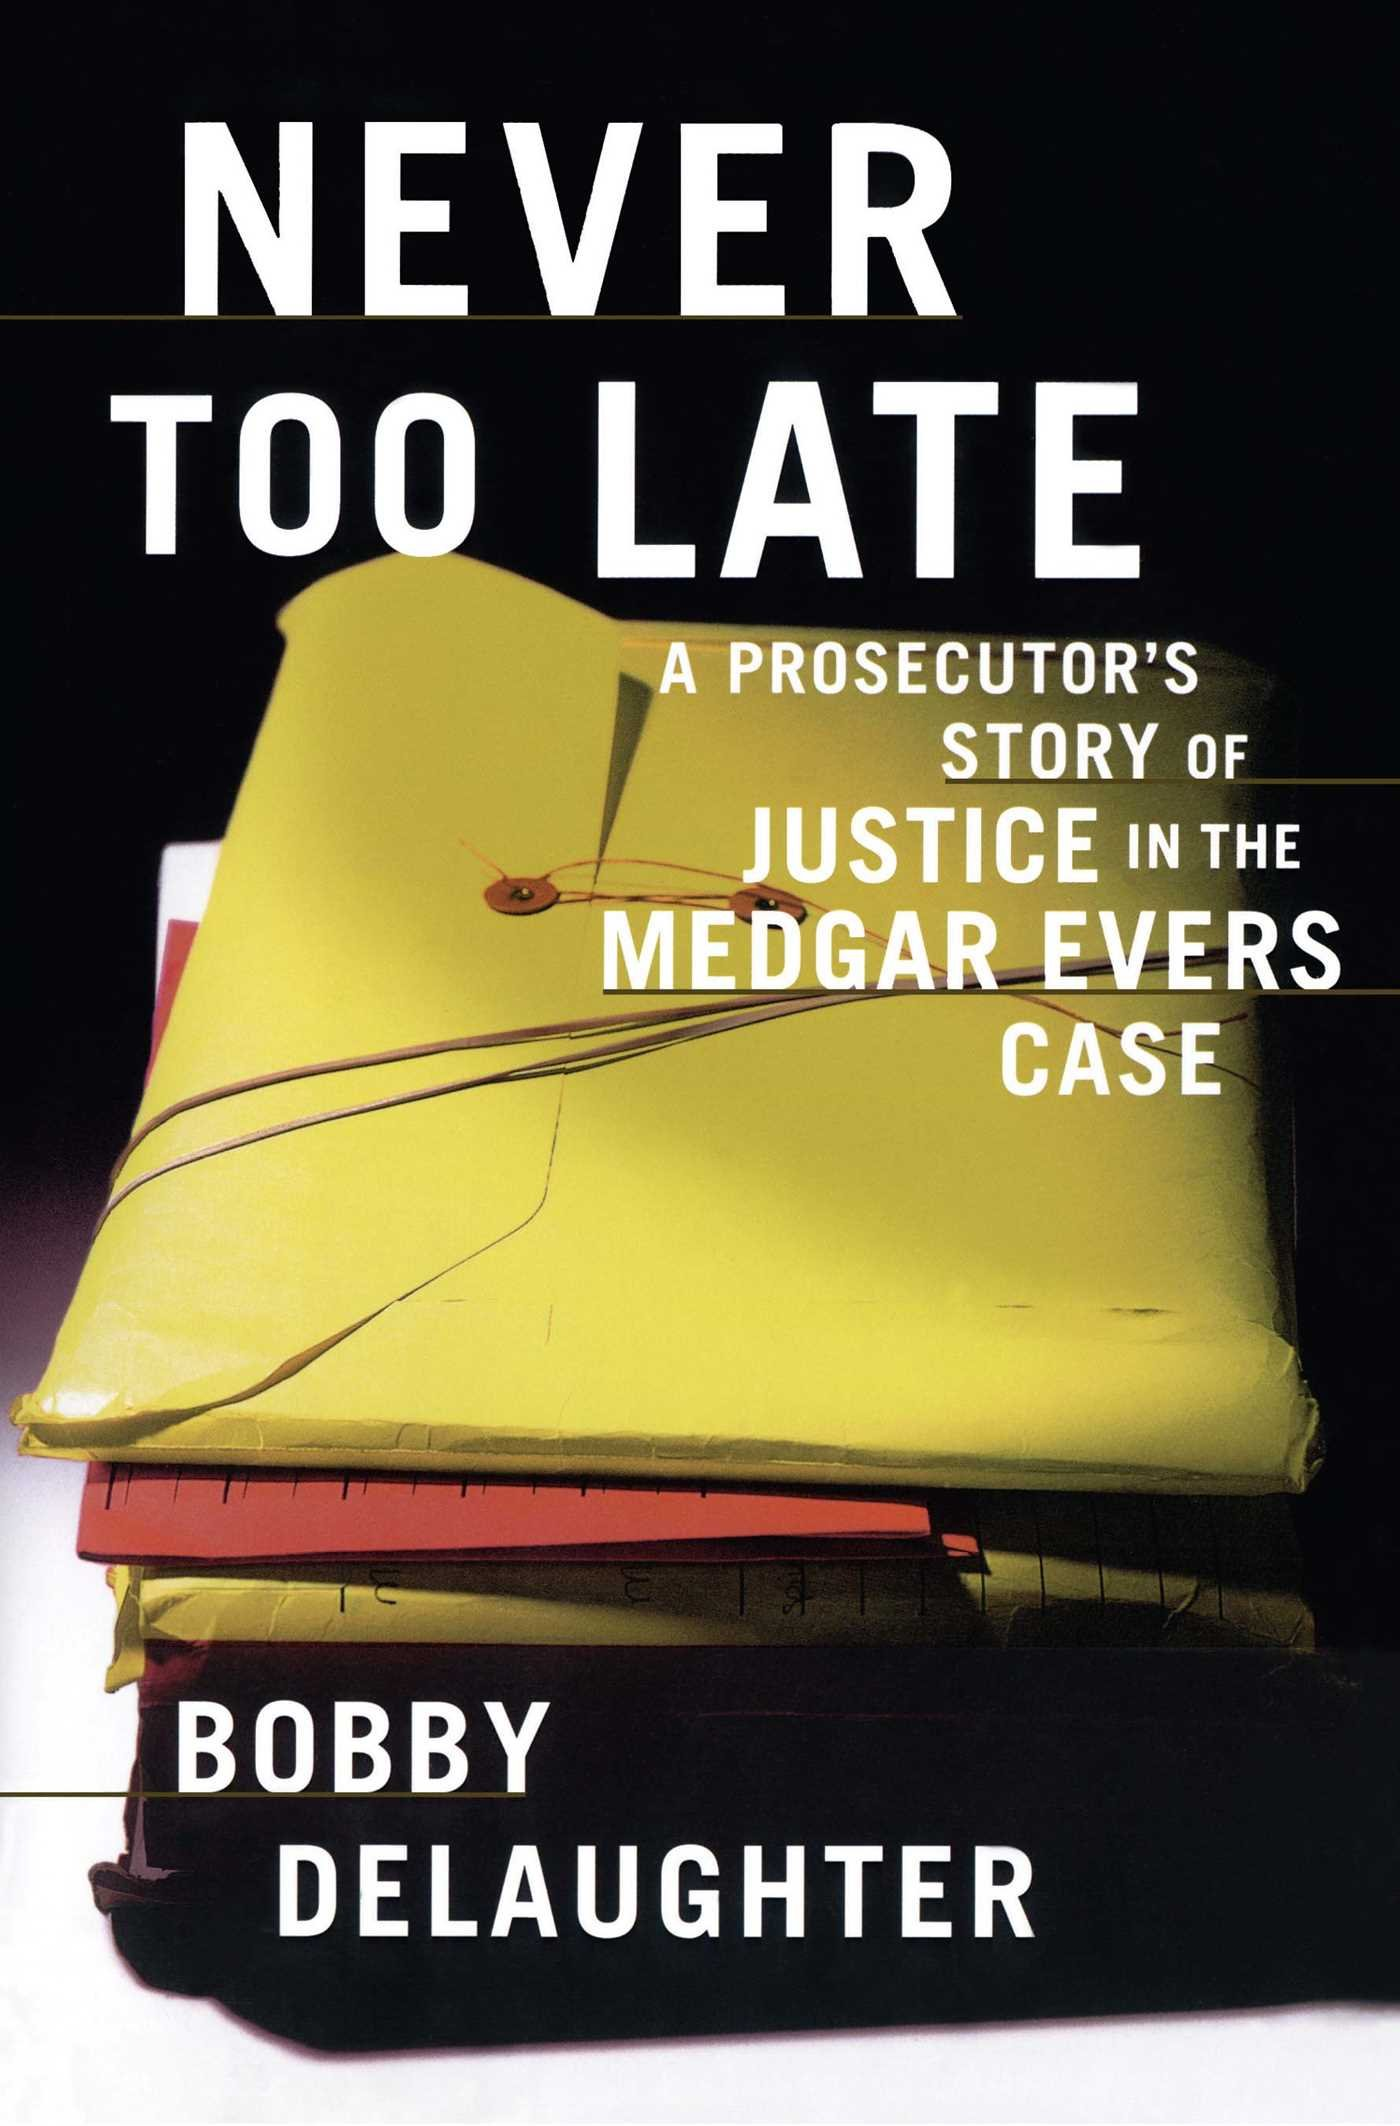 Download Never Too Late: A Prosecutor's Story Of Justice In The Medgar Evars Case 